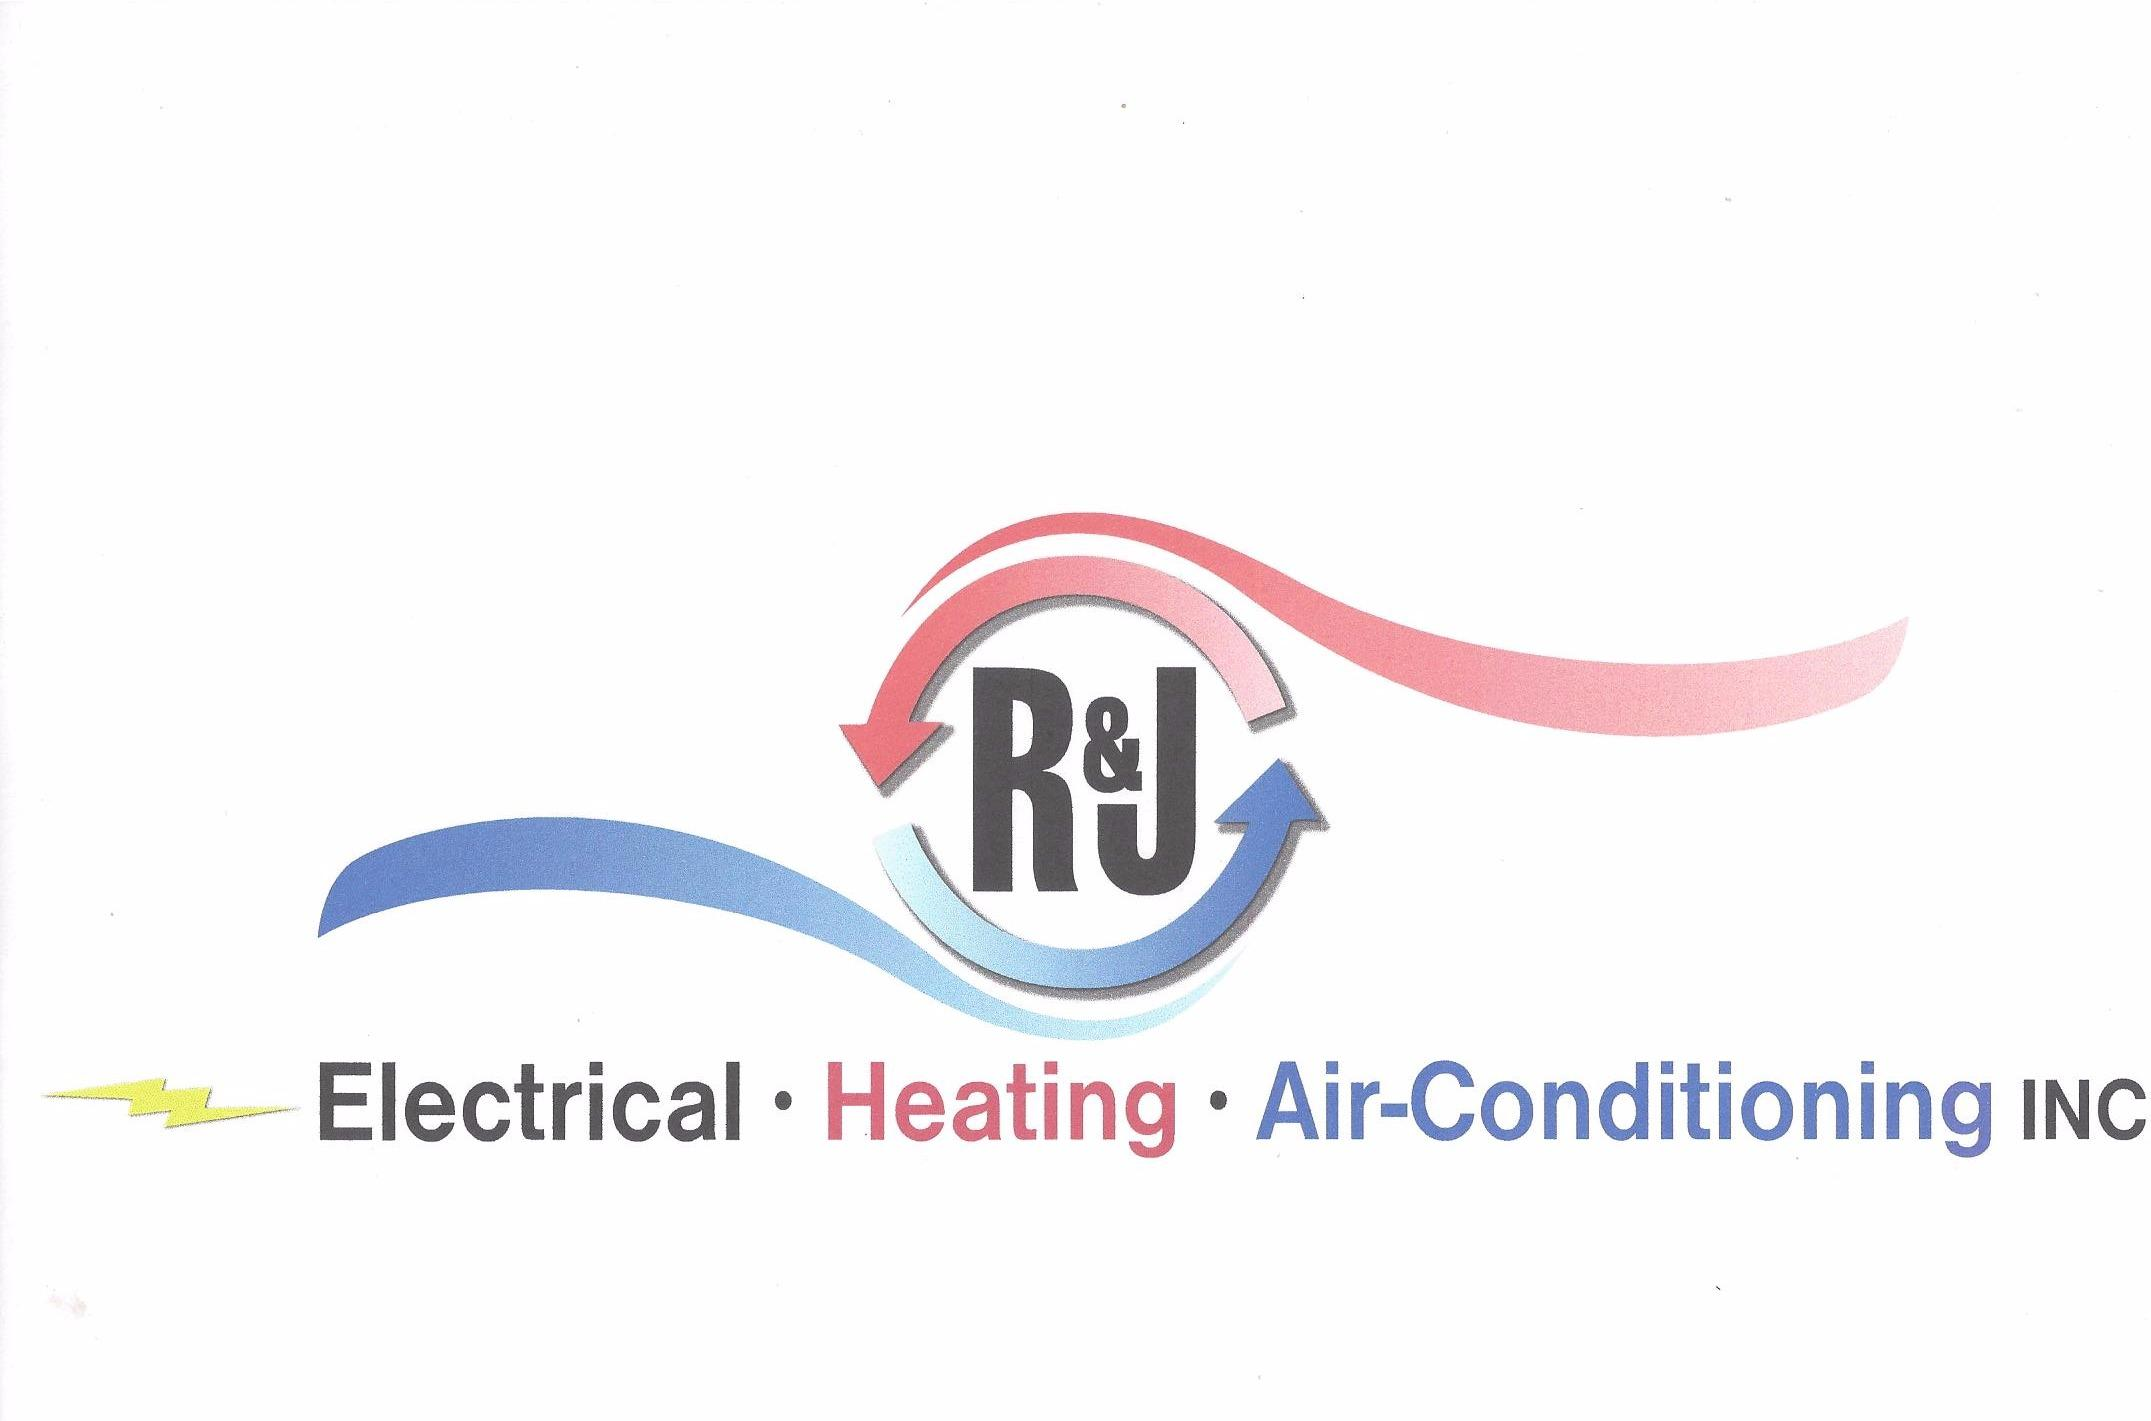 R & J Electrical Heating and Air Conditioning Inc image 0